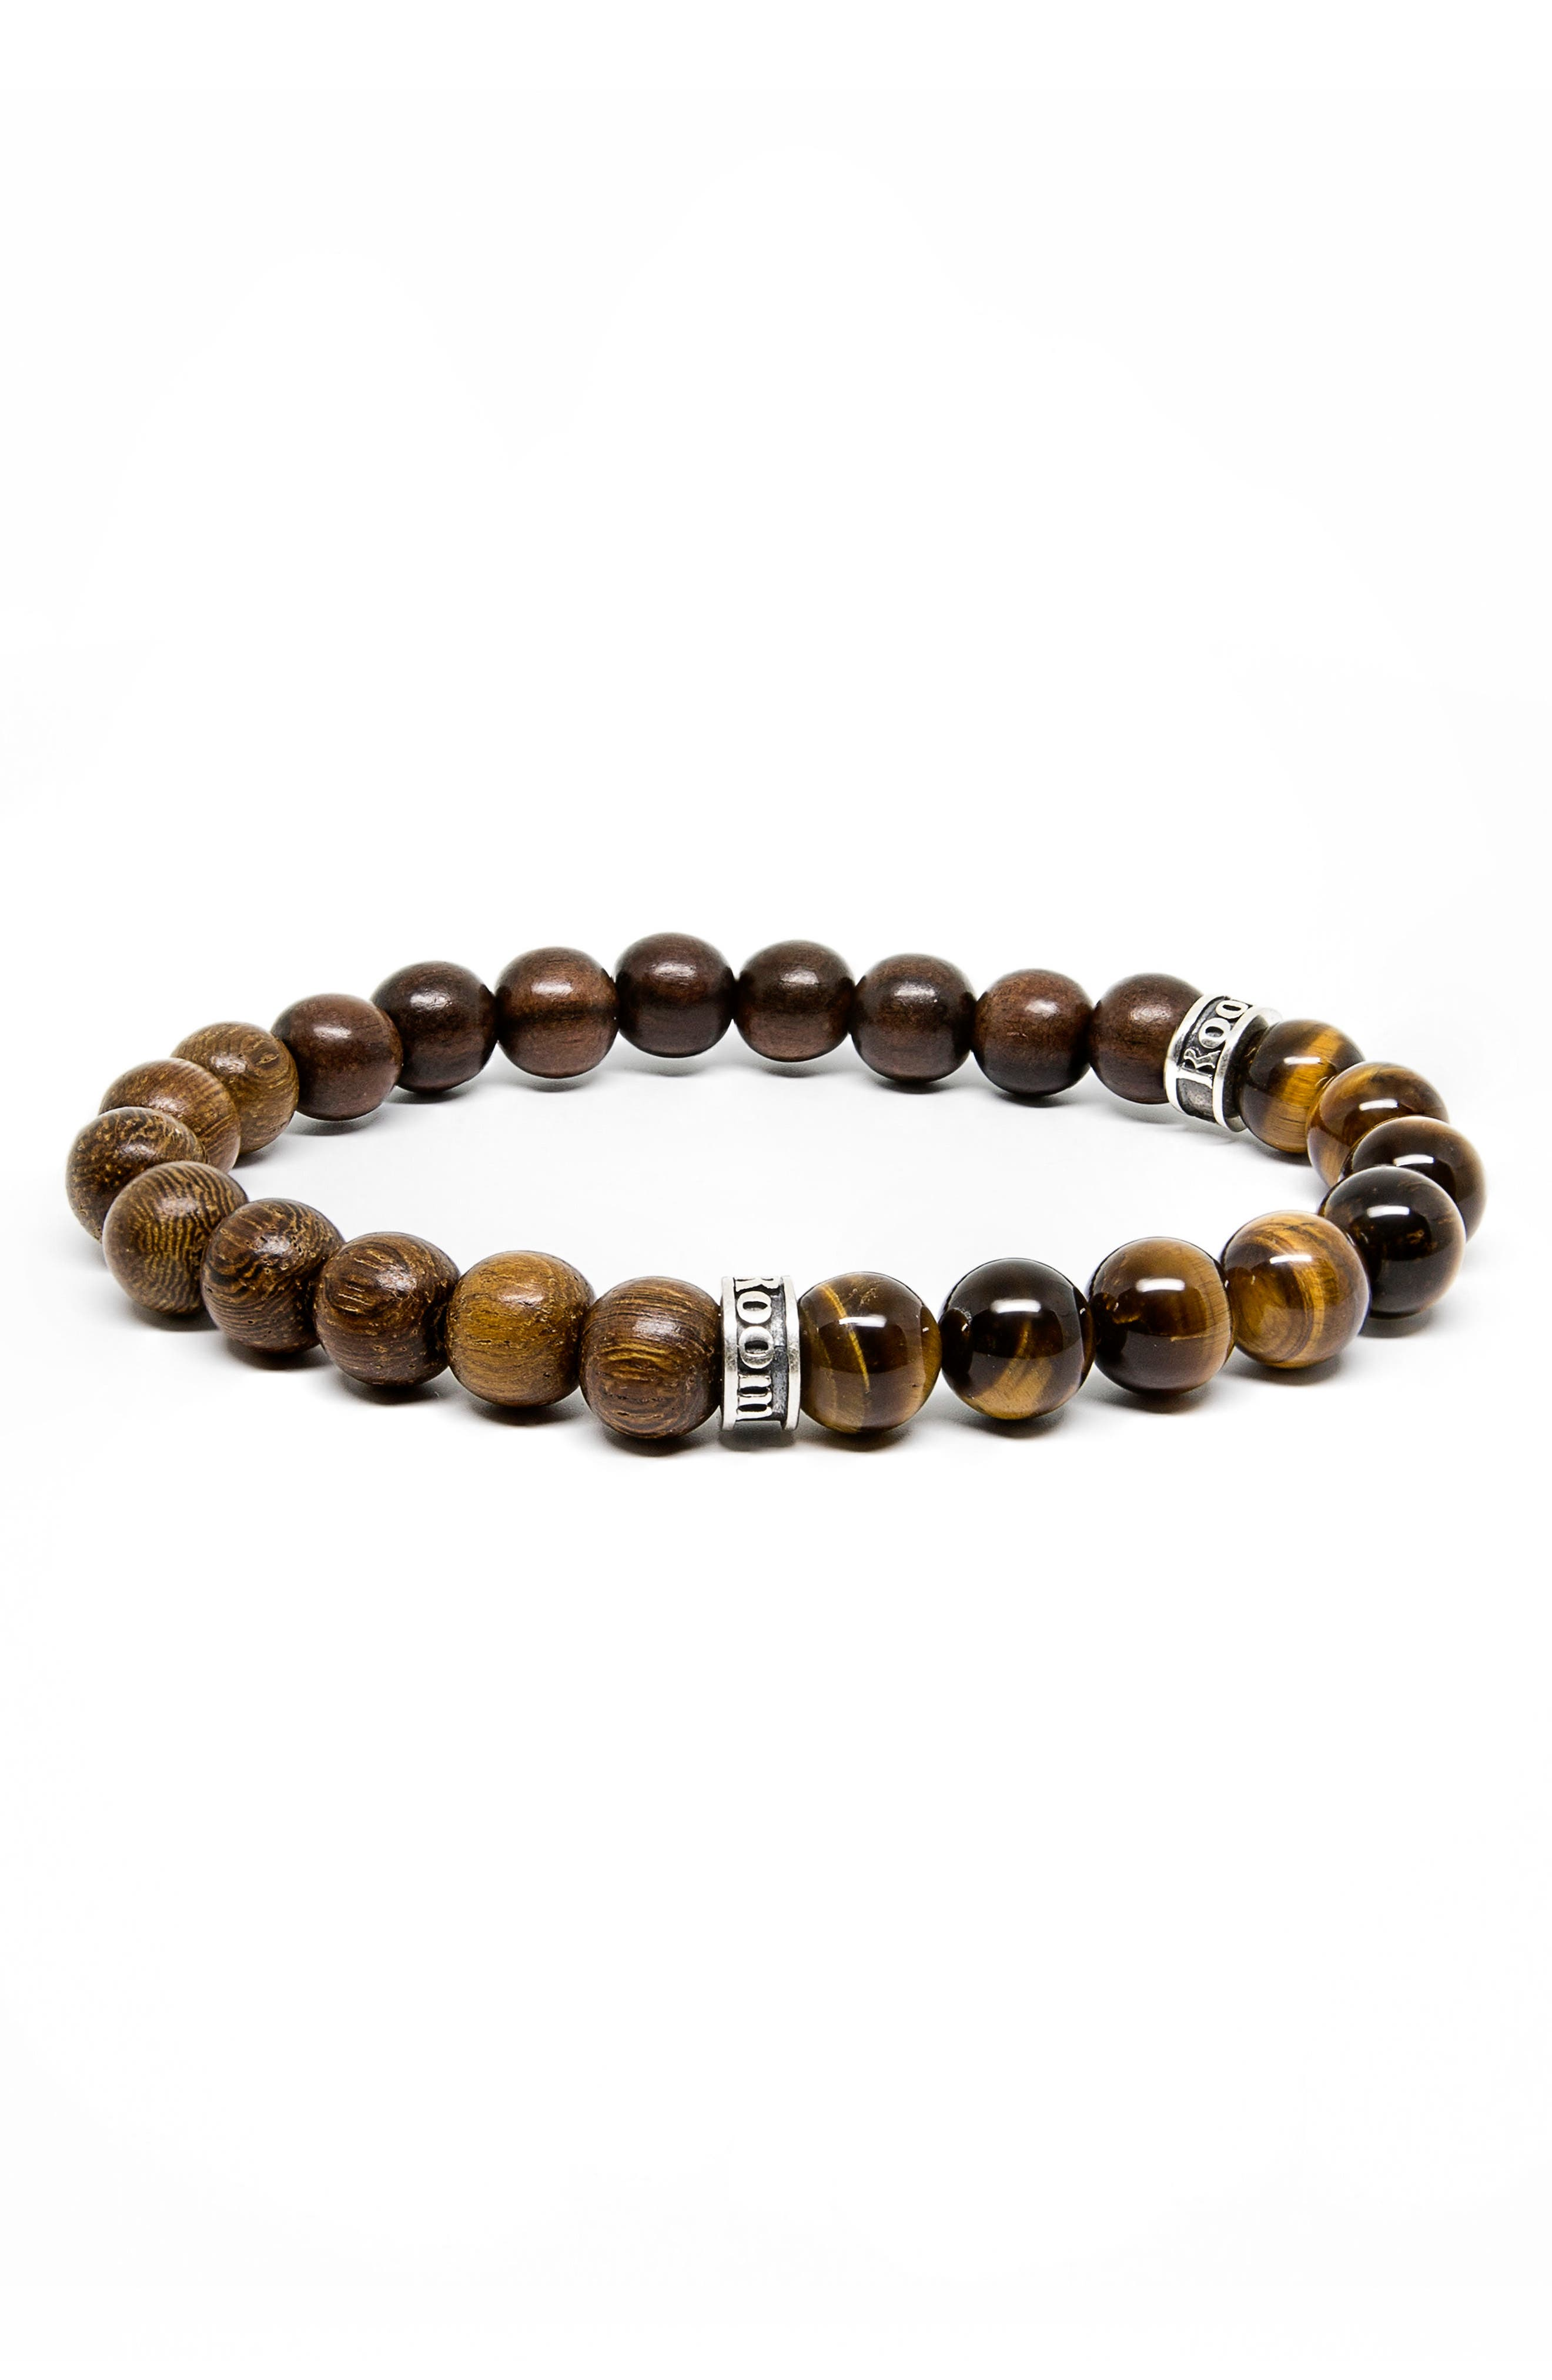 Main Image - Room101 Wood and Tiger Eye Stretch Bracelet